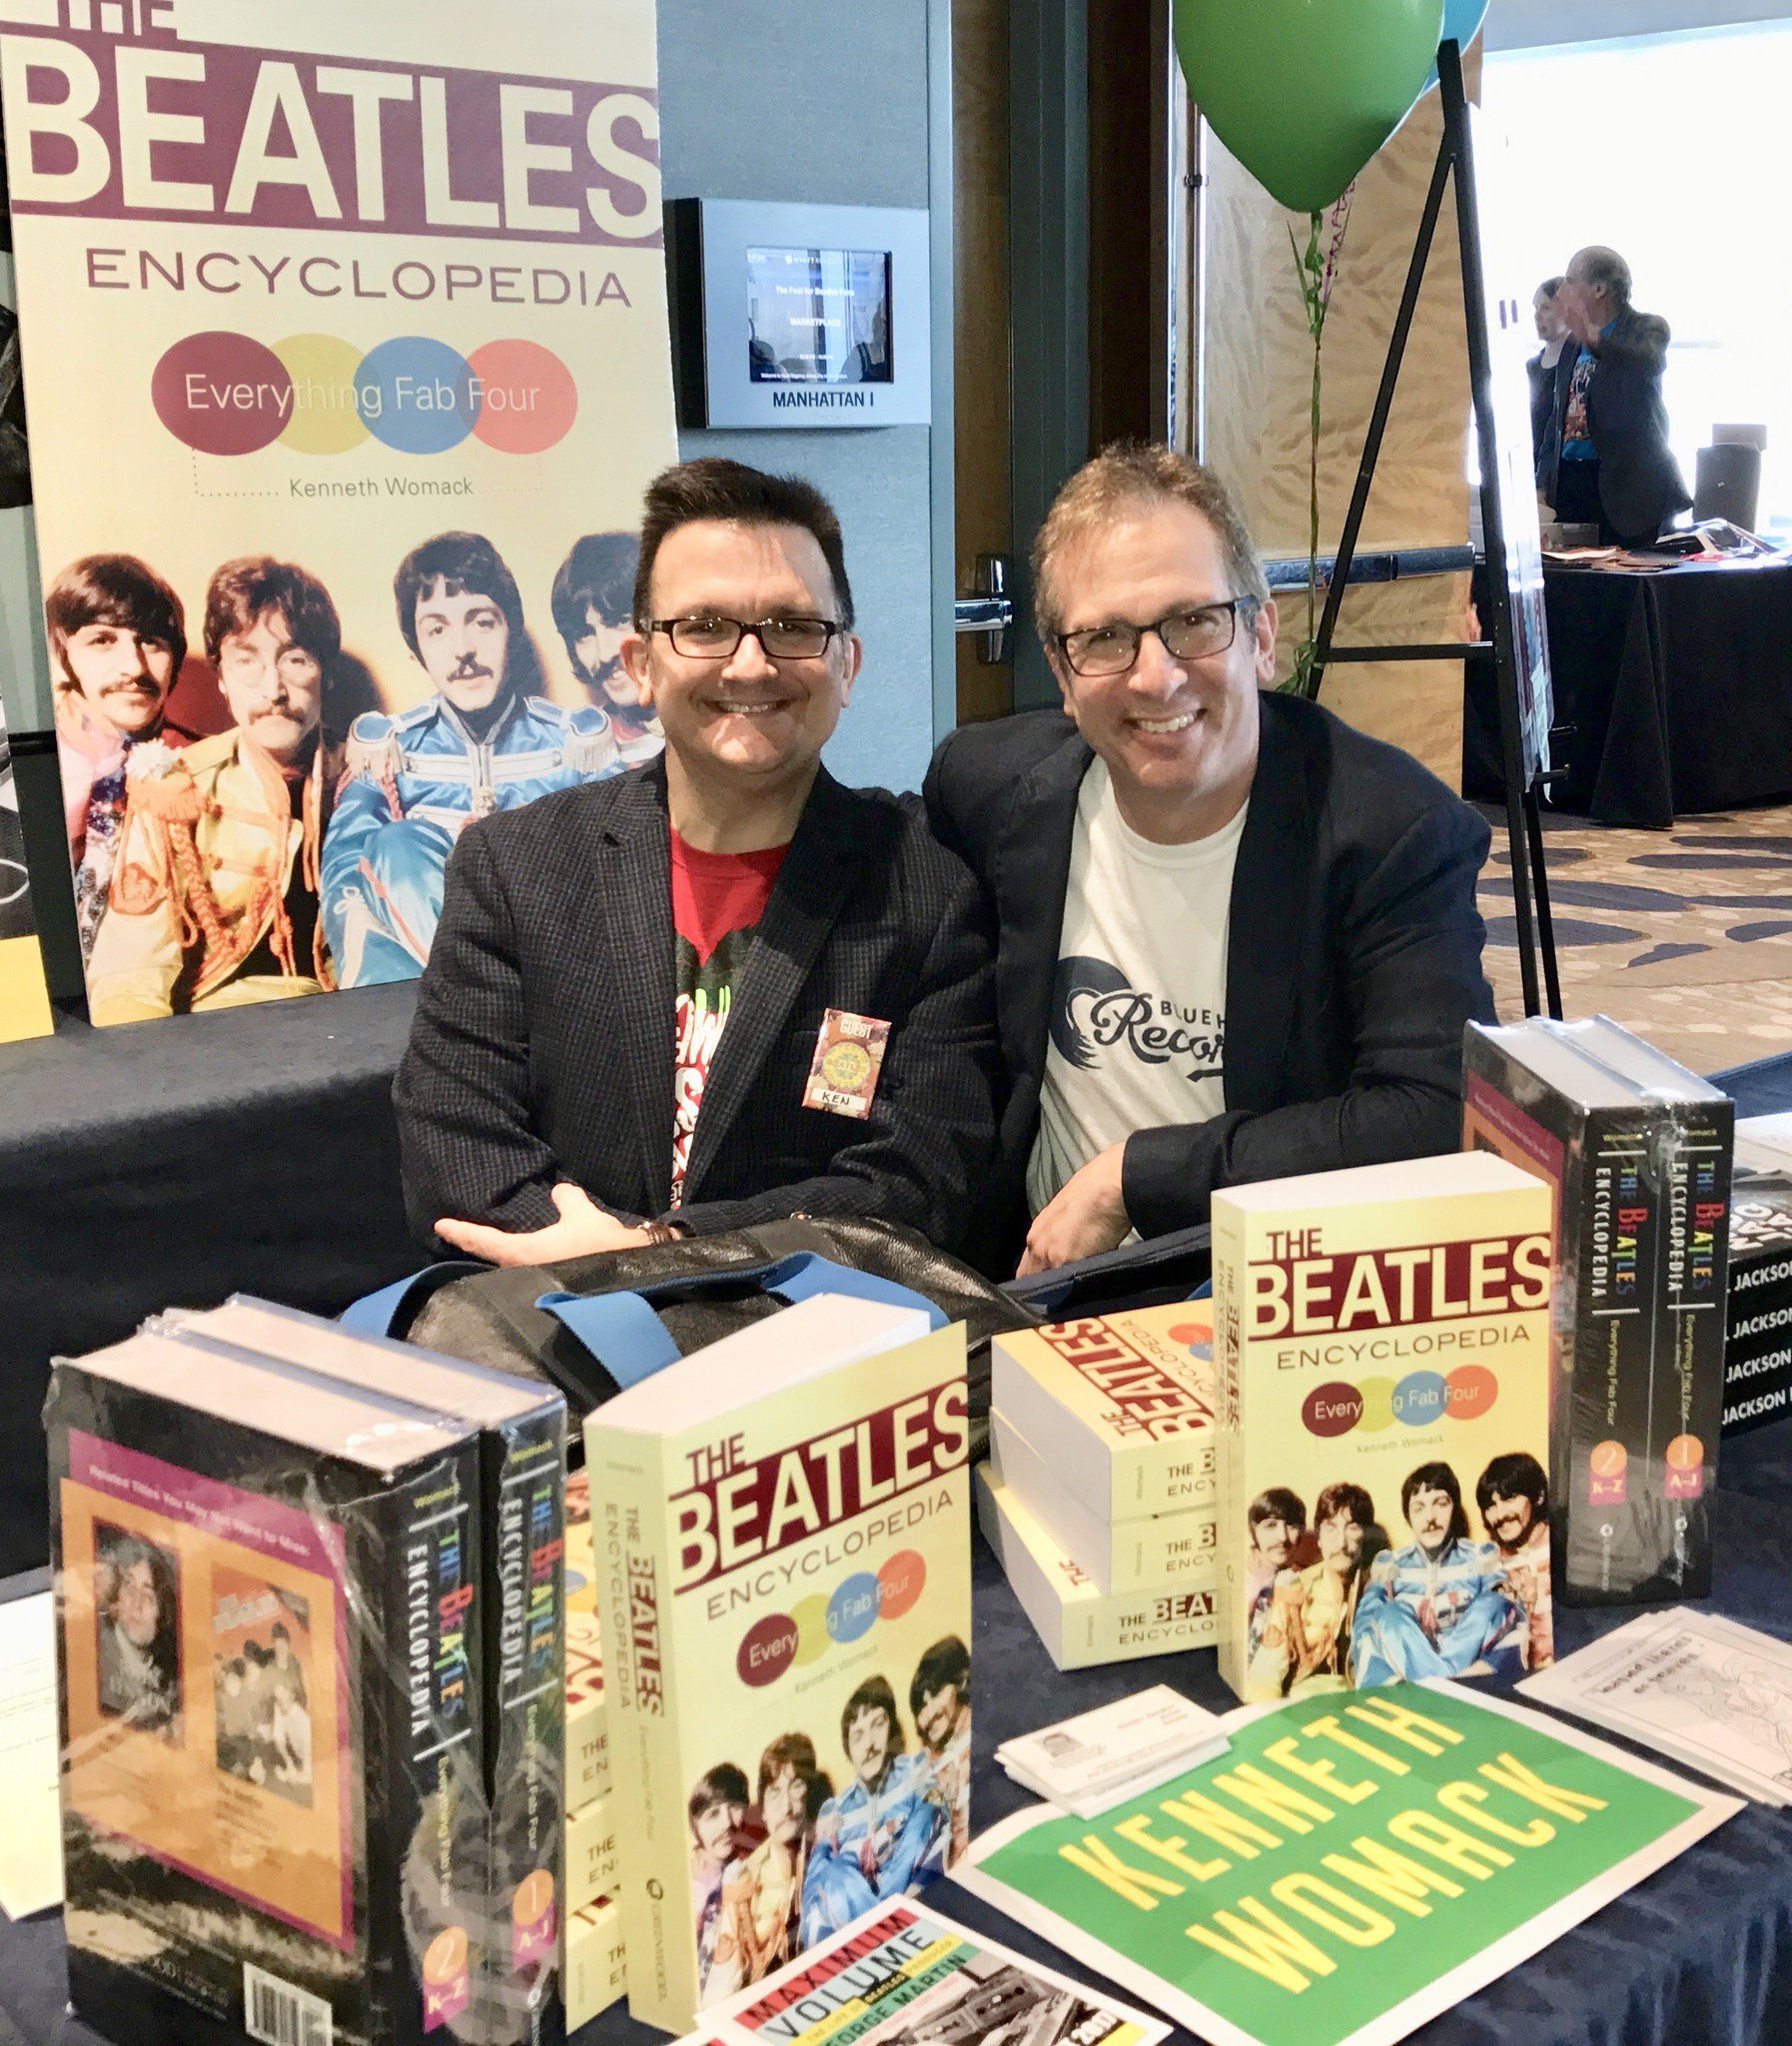 Adventures in collecting Beatles music